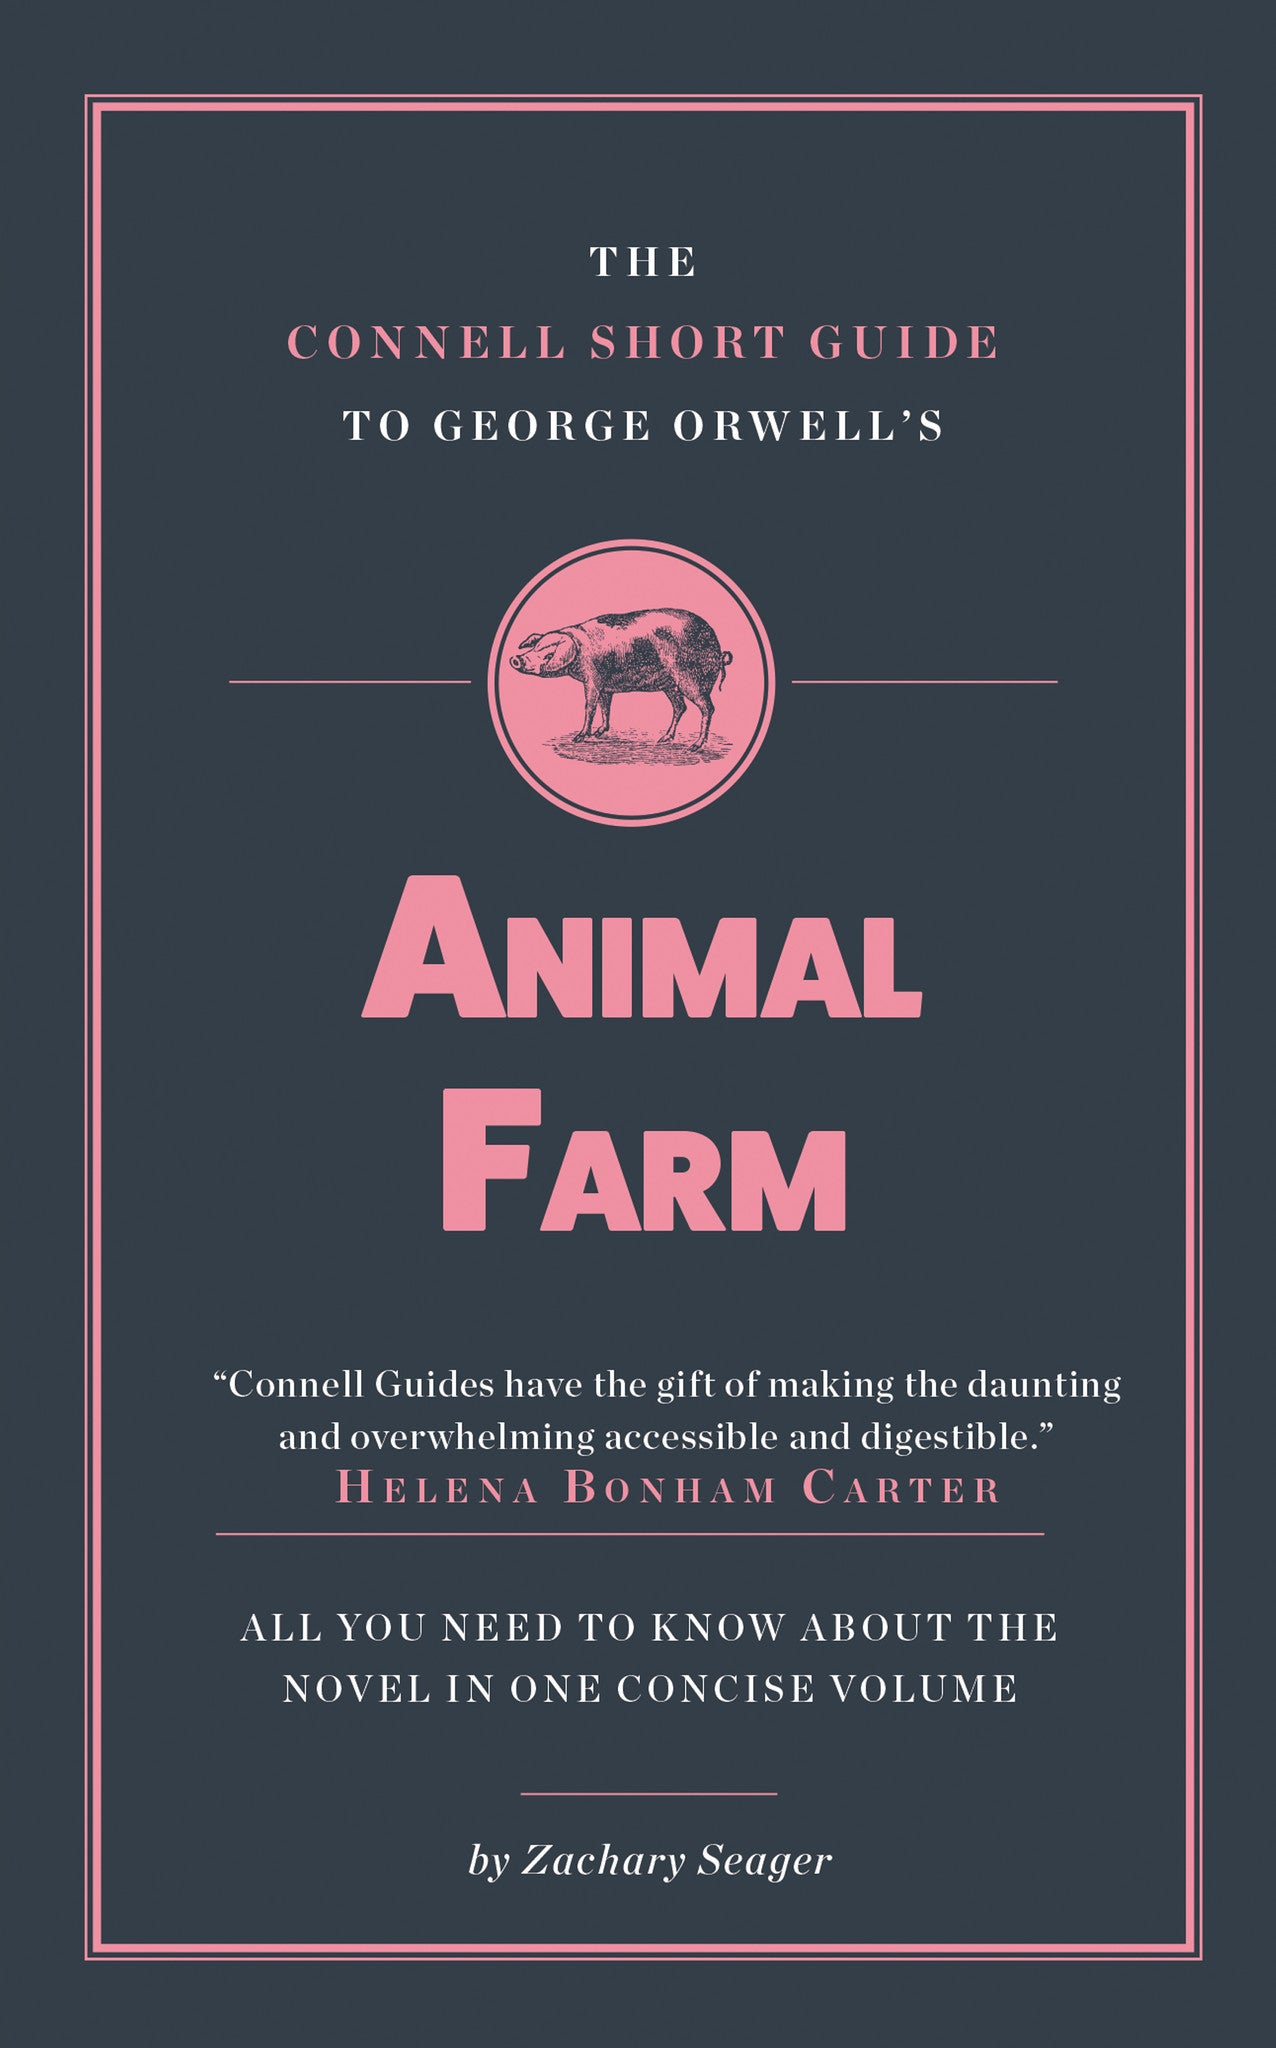 george orwell s animal farm short study guide connell guides george orwell s animal farm short study guide